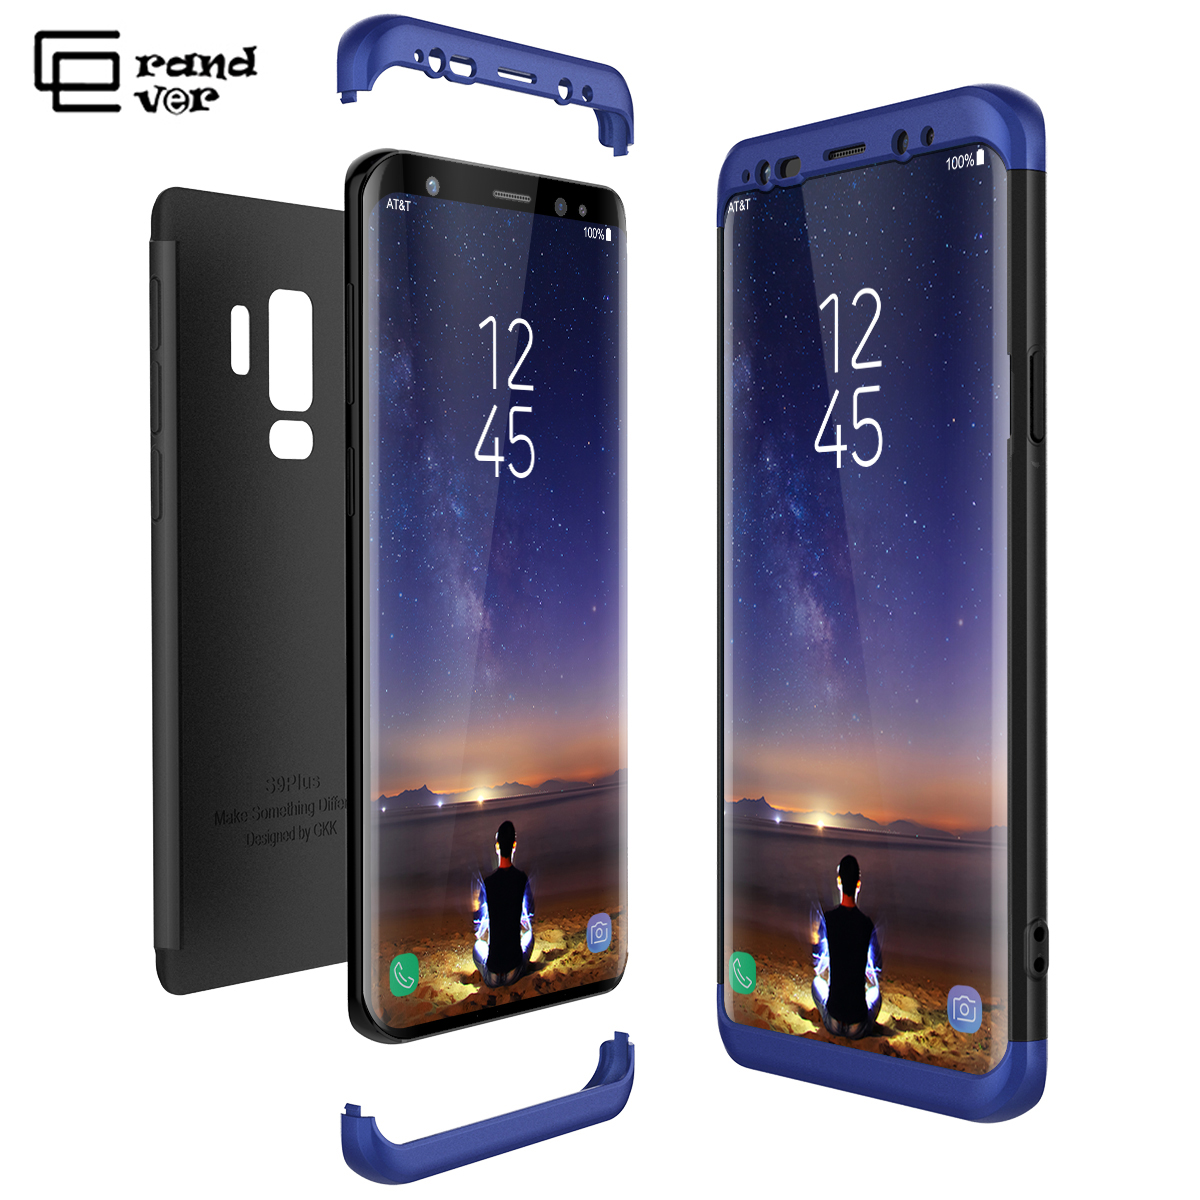 Luxury <font><b>Hard</b></font> PC <font><b>Case</b></font> For <font><b>Samsung</b></font> Galaxy S6 S7 Edge S8 S9 Plus Note 8 <font><b>Case</b></font> <font><b>A5</b></font> A7 A8 Plus 2018 Coque 3 in 1 360 Full Body Cover image